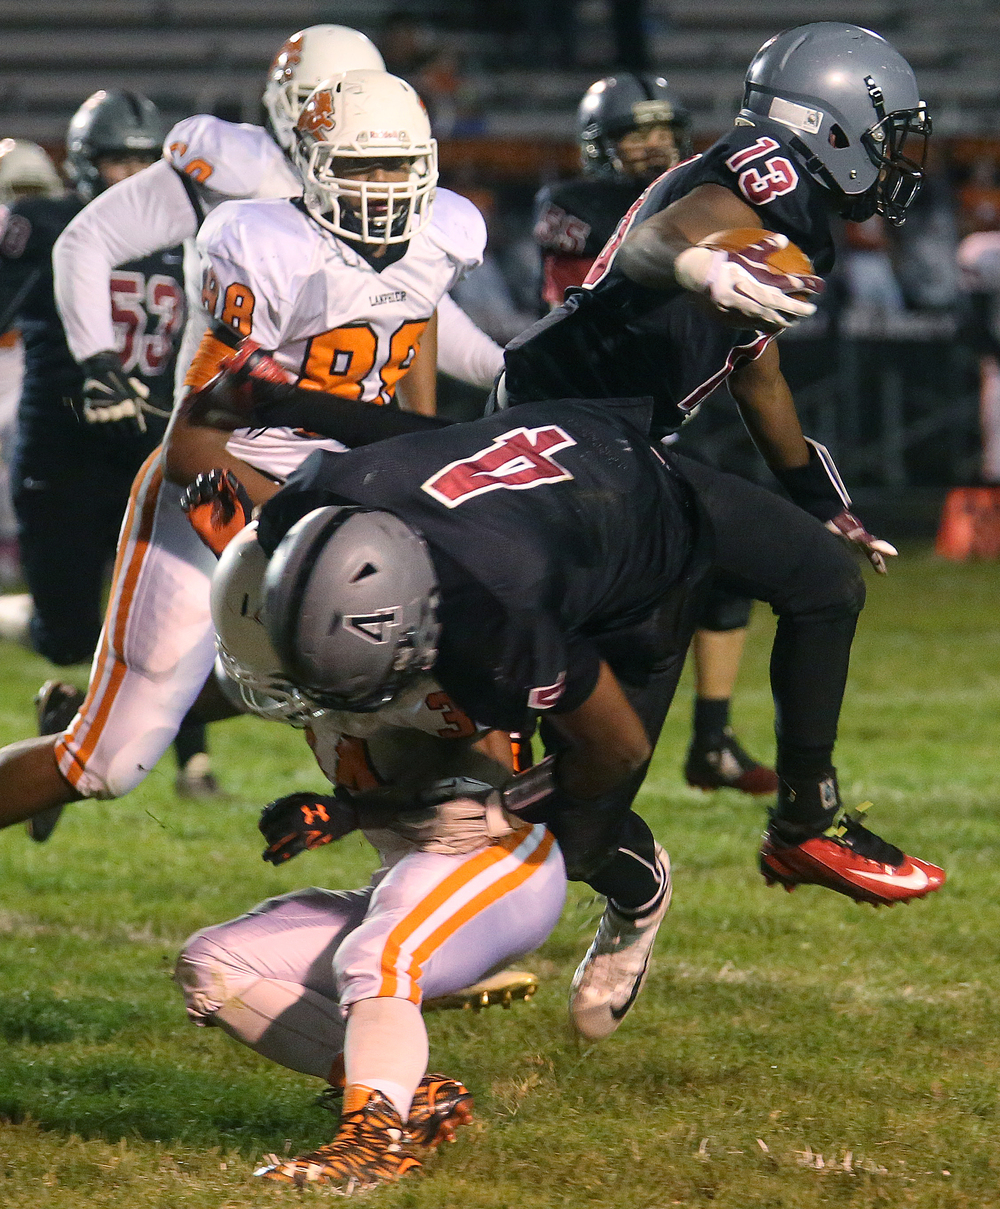 Senators ball carrier Jubbar Cross goes airborne while sprinting for his team's first touchdown of the night. Defending on the play is Rahkeem Hawkins. David Spencer/The State Journal-Register